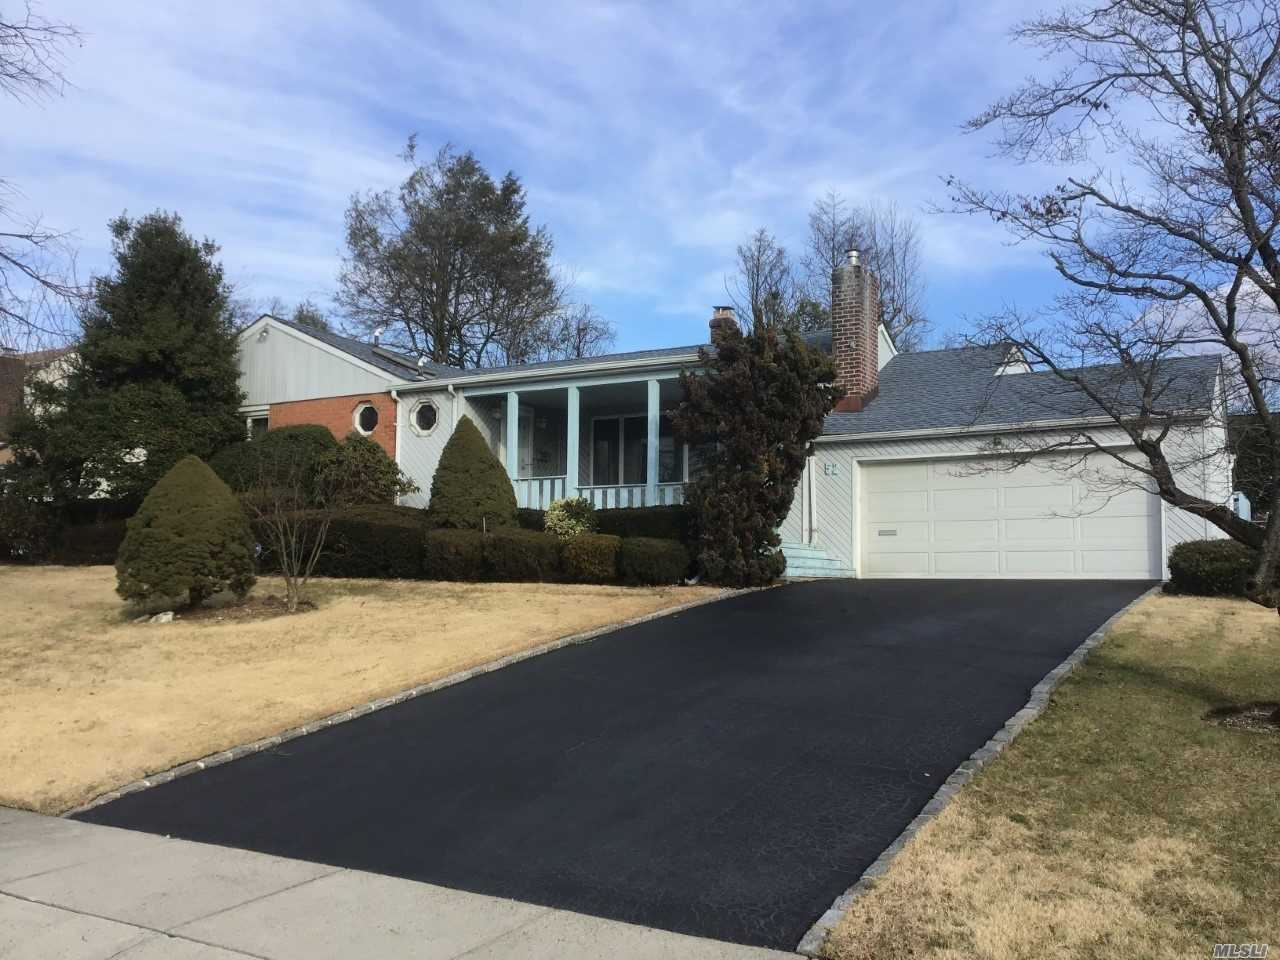 Diamond Expanded Ranch, 3 W/Potential 4 Br Near Searingtown Pond On 9500 Sq Ft Lot W/Prof Lndscpng, 4 Skylts, Eik W/Lrge Bkfst Rm & Grnt Cntp, All New: Dw, Micro, Oven, Mrble Flr; Glass Sliders To 2 Dks, Lrge 1st Flr Lndry! 2 New Luxury Spa Bthrms With Heated Floors, Bb & Quartz Counters! Mbth Makeup Vanity, Den W/Fp, Fin Bsmt, All New: 3 Zone Gas Heat, Bb, Cac, Lifetime Roof; All Redone Oak Flrs! Andersen Windows Throughout, 2-Car Att Gar, Igsp, Byd Fully Fenced, A+ Herricks Sd#9, Low Taxes